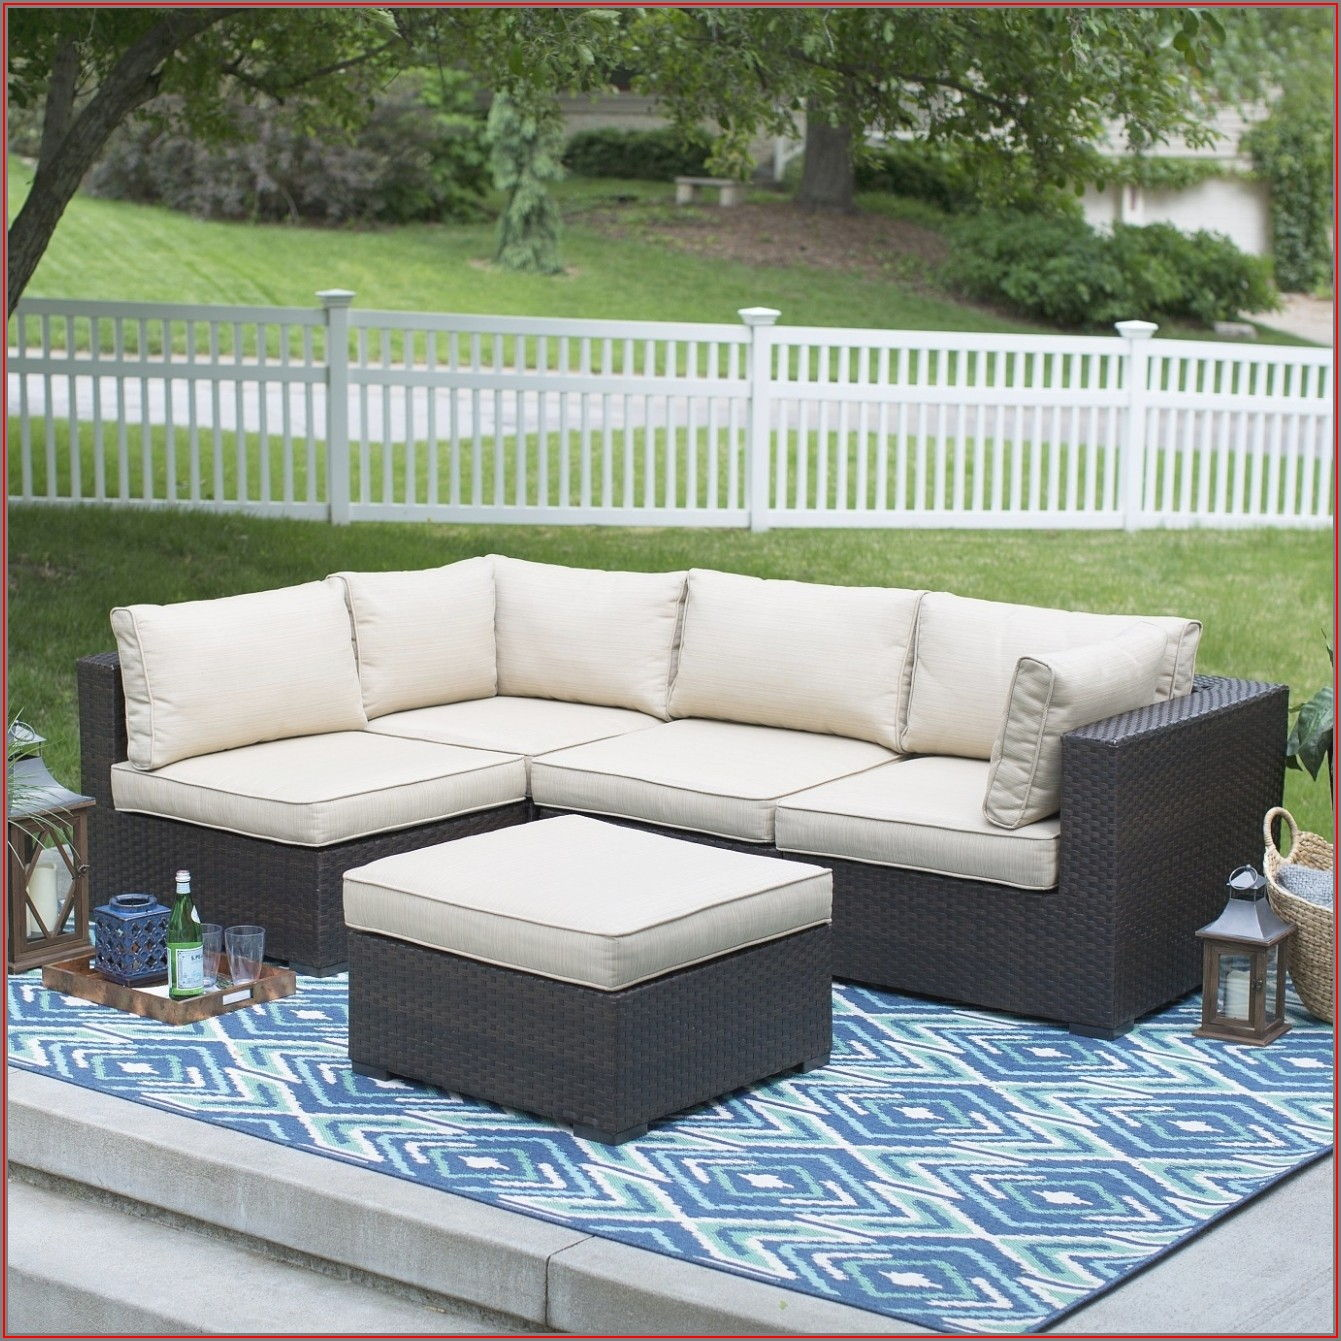 Wayfair Patio Chairs With Ottoman